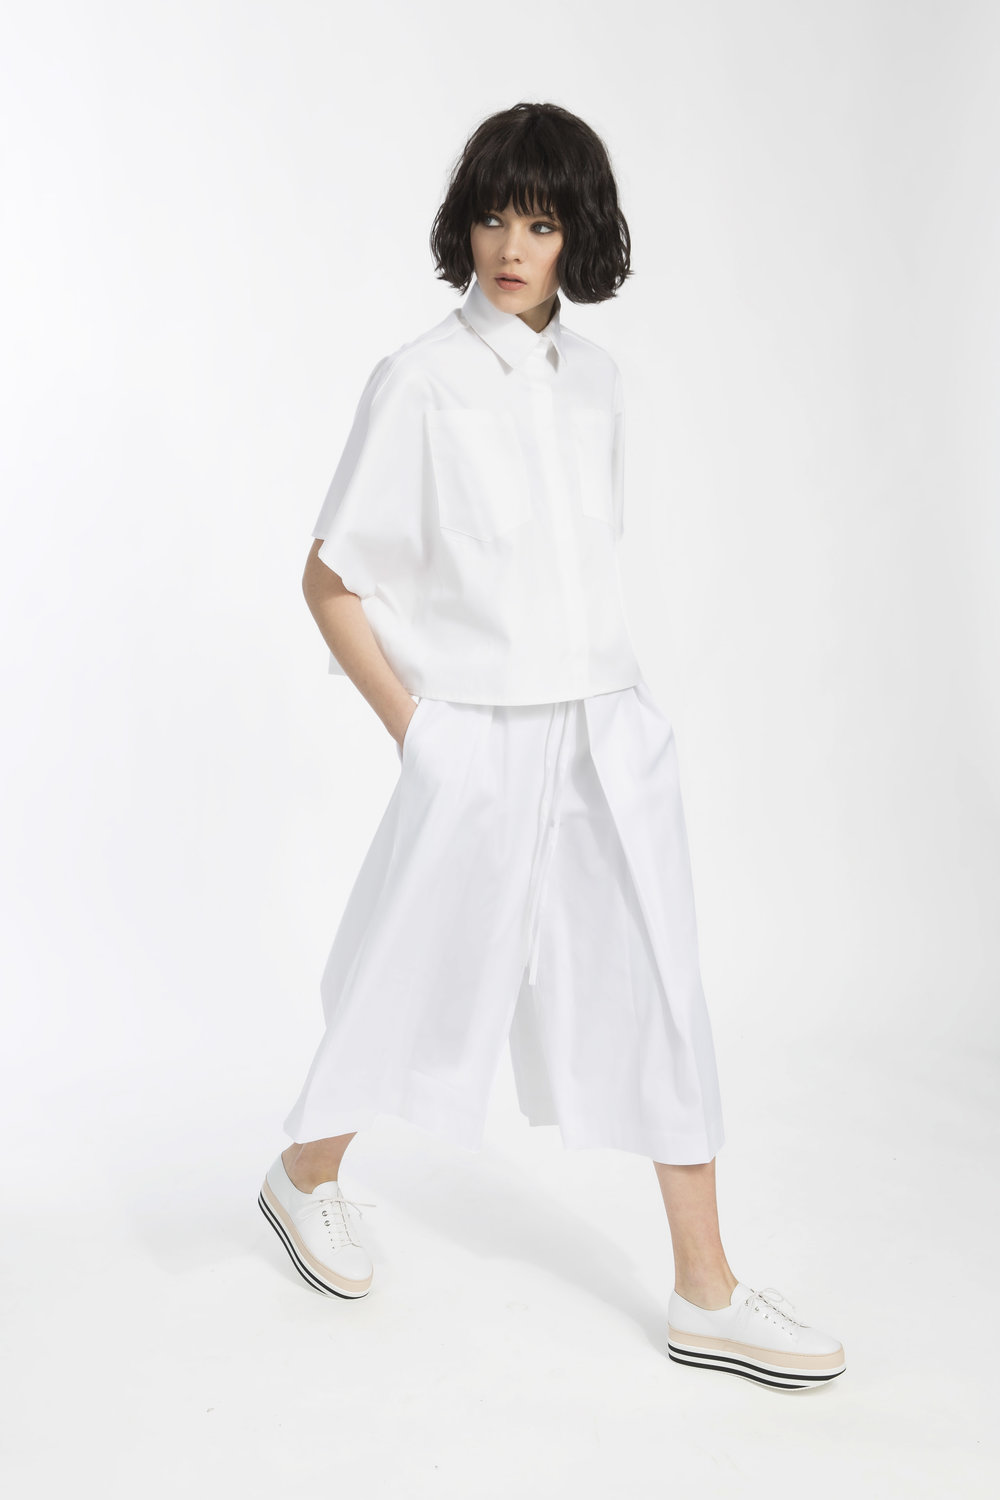 Deena shirt - White cotton popeline shirt